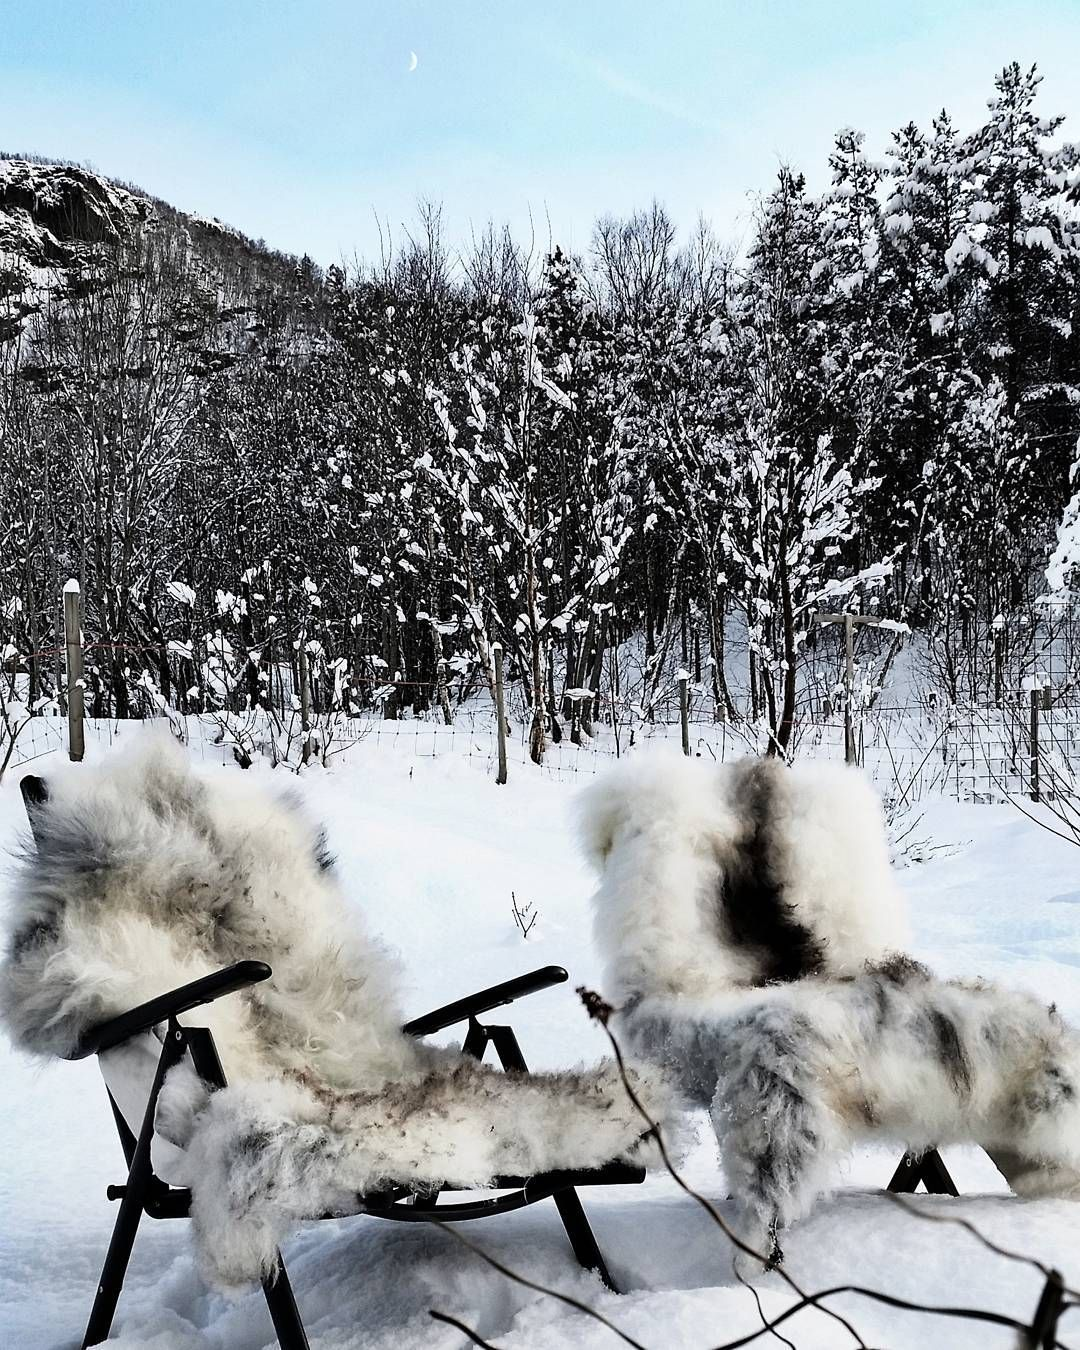 Last fall we sent our first 5 sheepskins  to the last existing tannery in Norway; Granberg Garveri. We  just got 3 furs back and they are amazing. In the future we hope to do this on a yearly basis. #skinnfell #villsau #sheep #sheepskin #tannery  #norwegianwayoflife #granberggarveri #saueskinn #interior #interior2you #interiordesign #countryliving #outdoors #outdoorlife